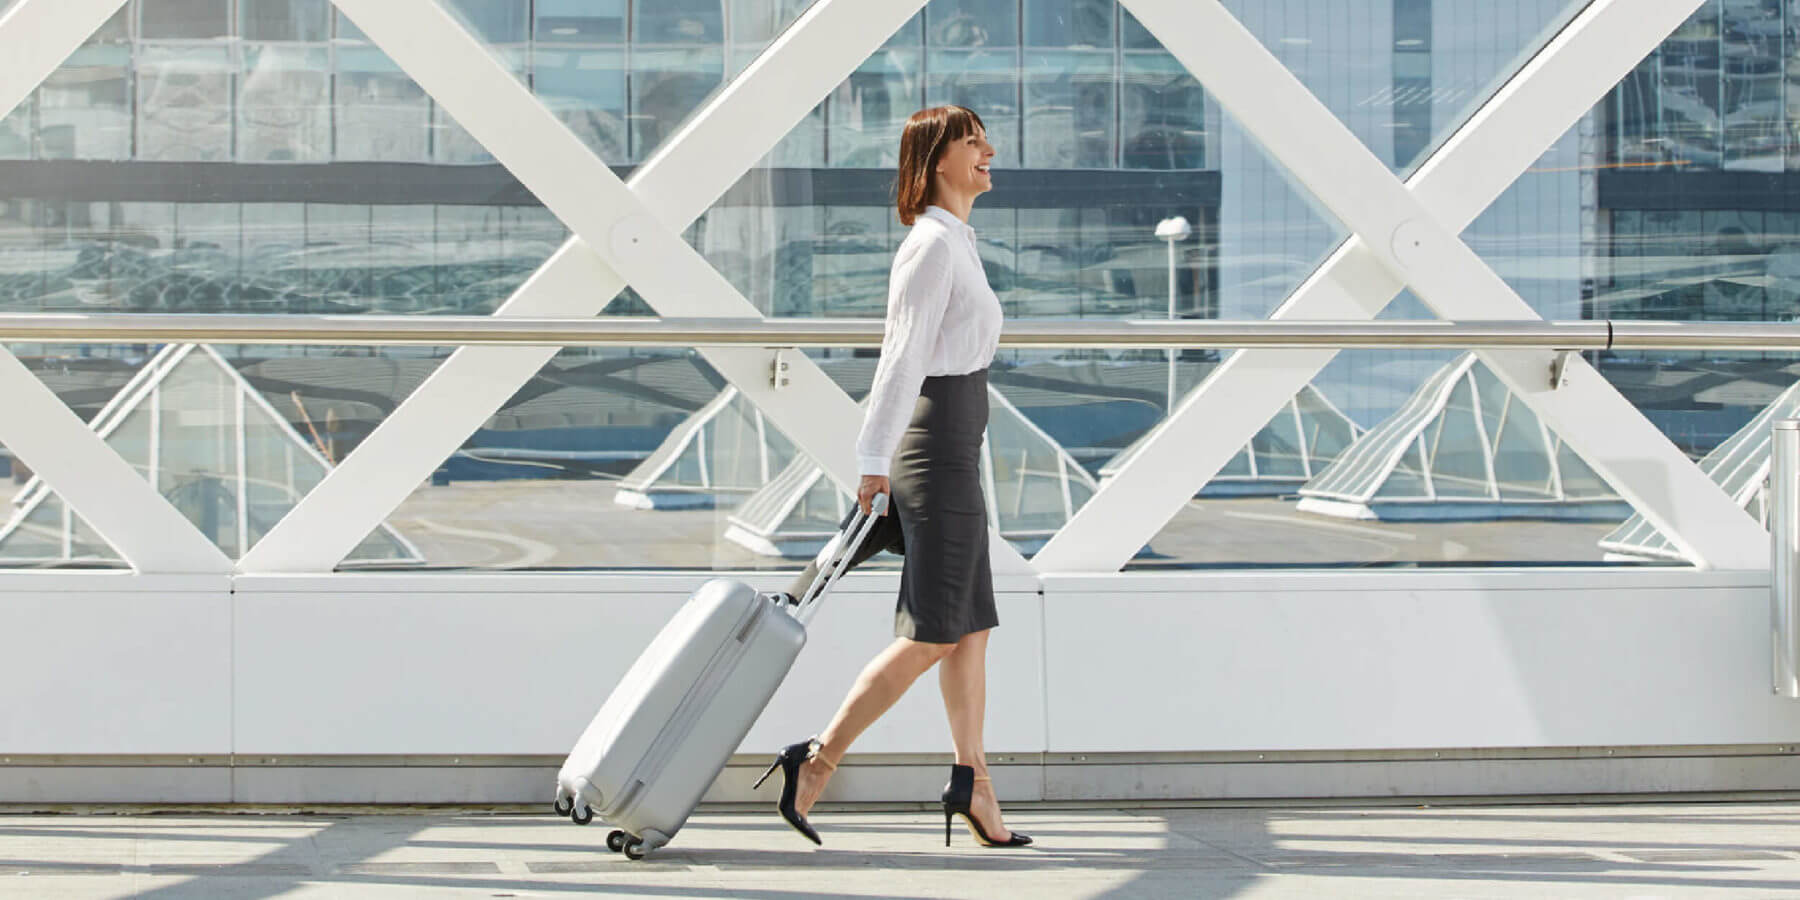 Improving The Safety For Women Business Travelers In Your Company